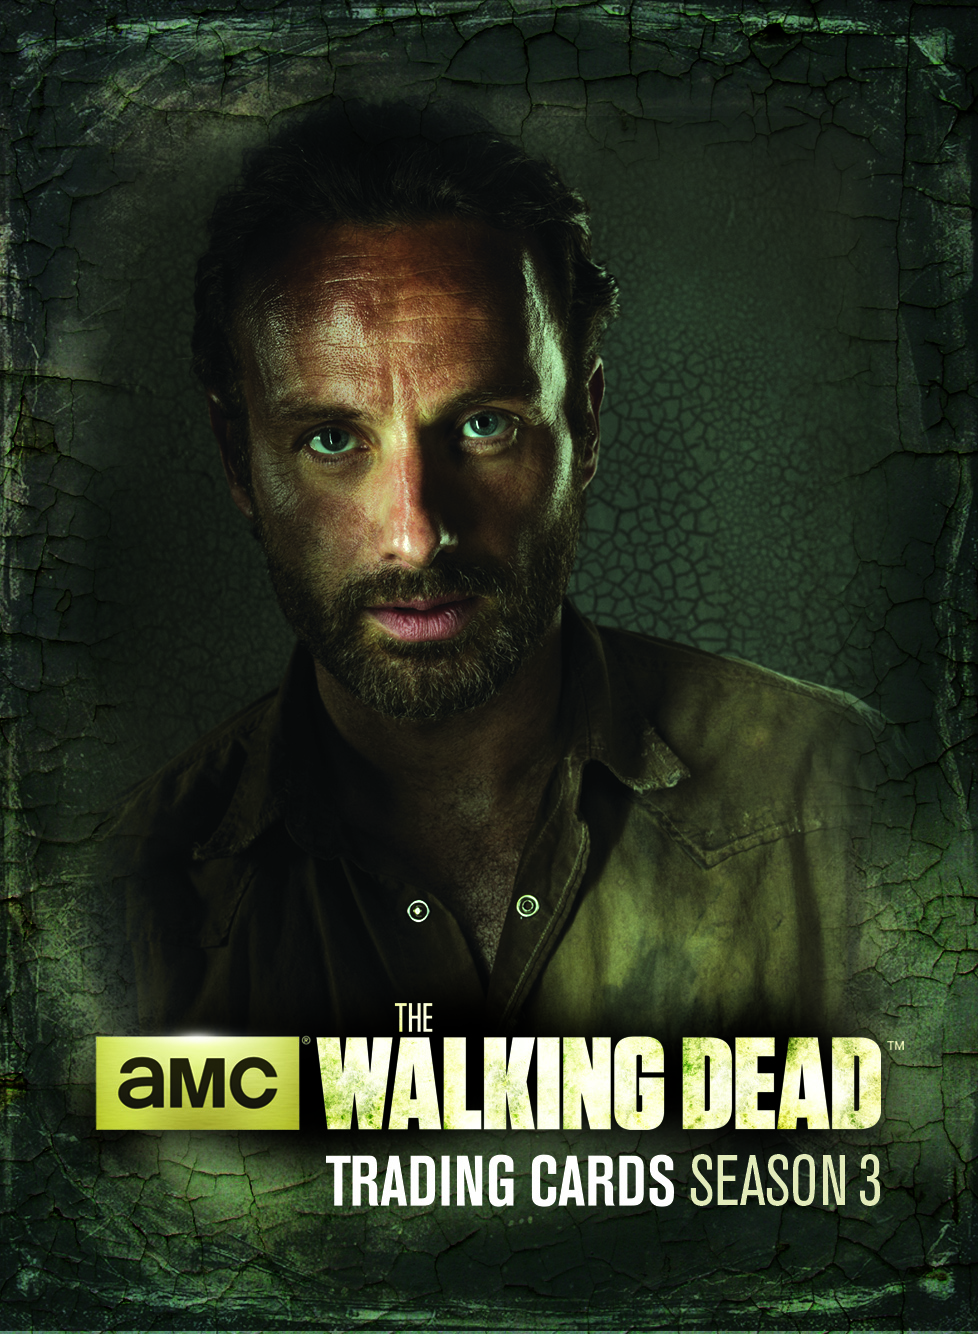 Cryptozoic working on The Walking Dead Season 3 - coming in